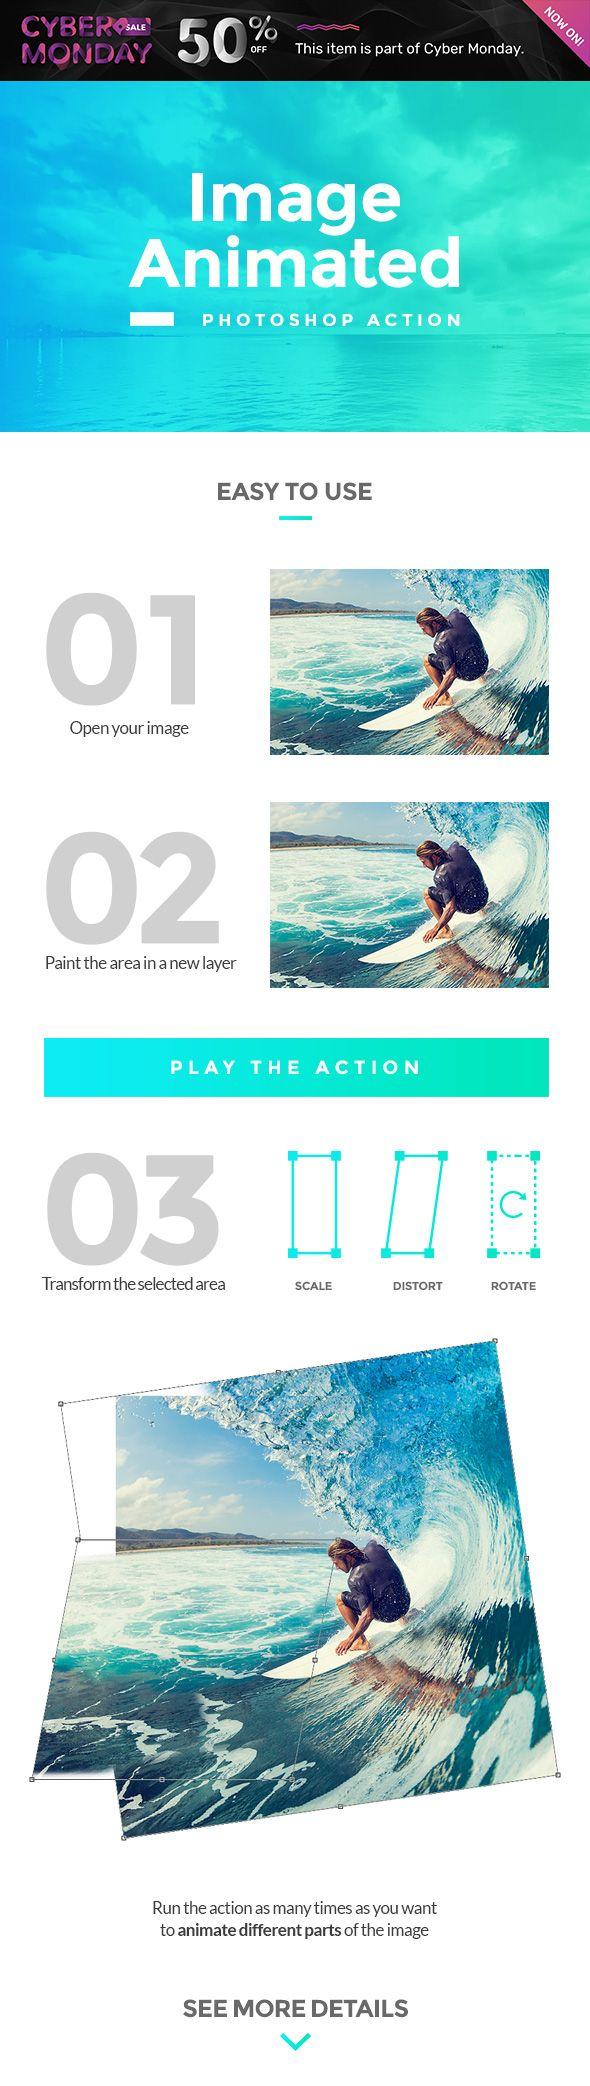 Image Animated #Photoshop Action - Photo Effects #Actions